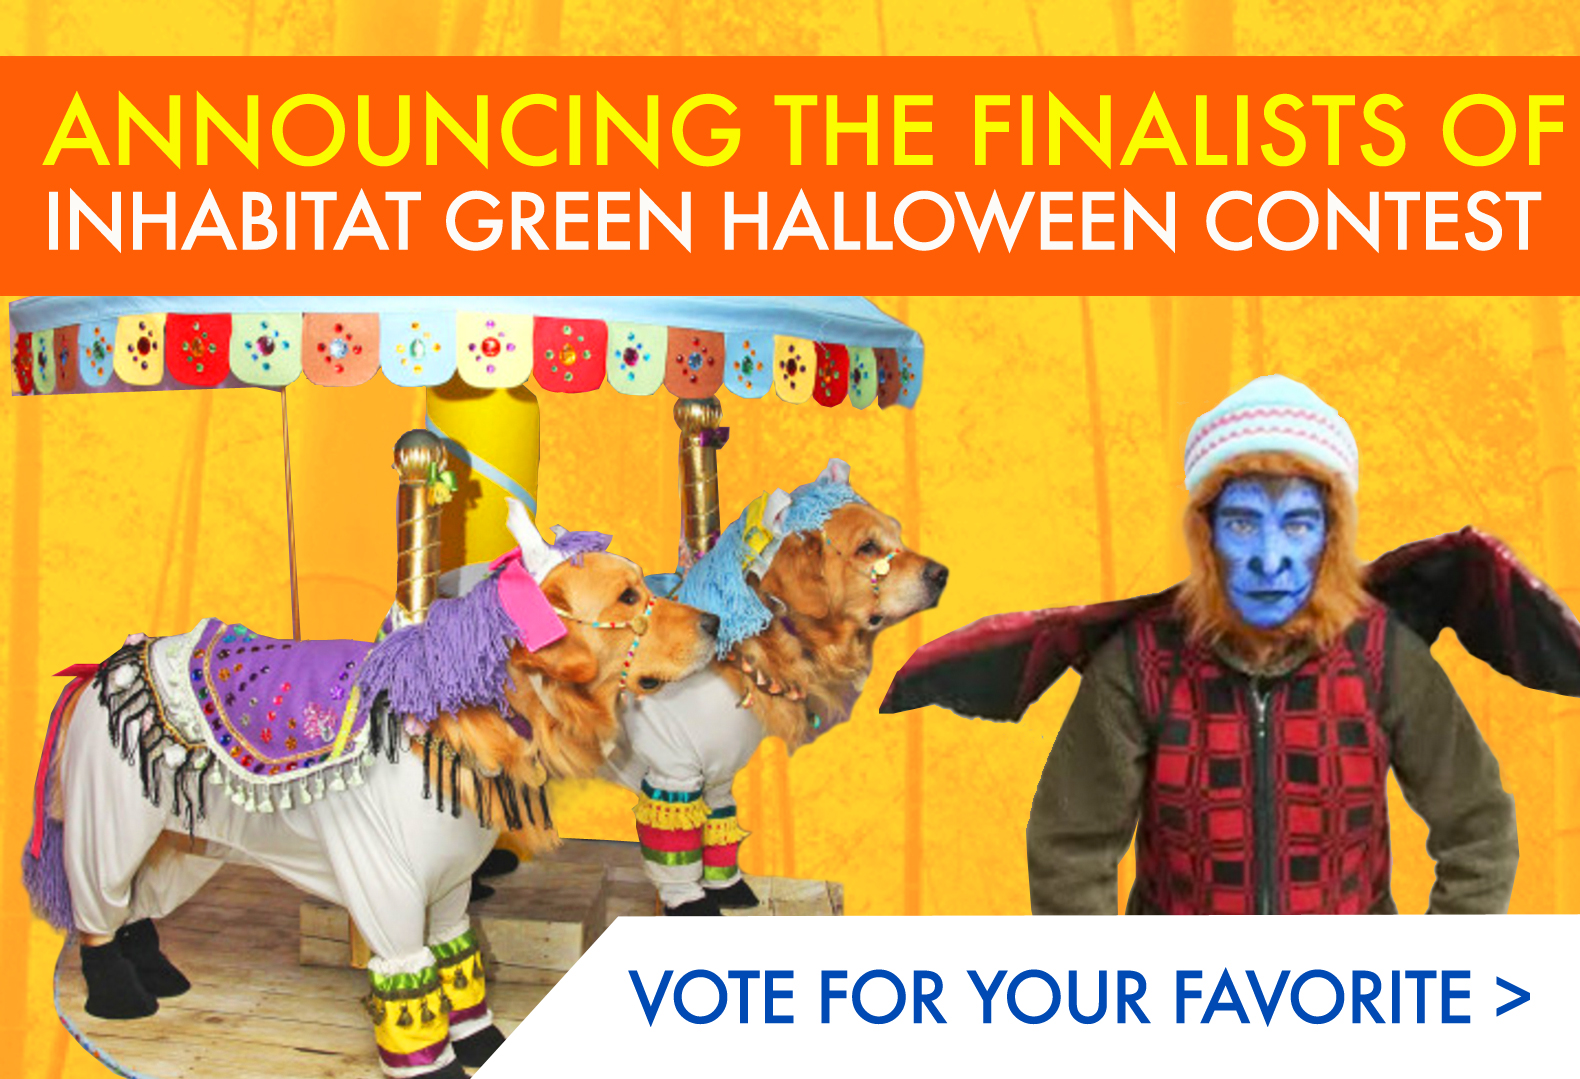 LAST CHANCE Vote For Your Favorite Green Halloween Costume Contest Finalist